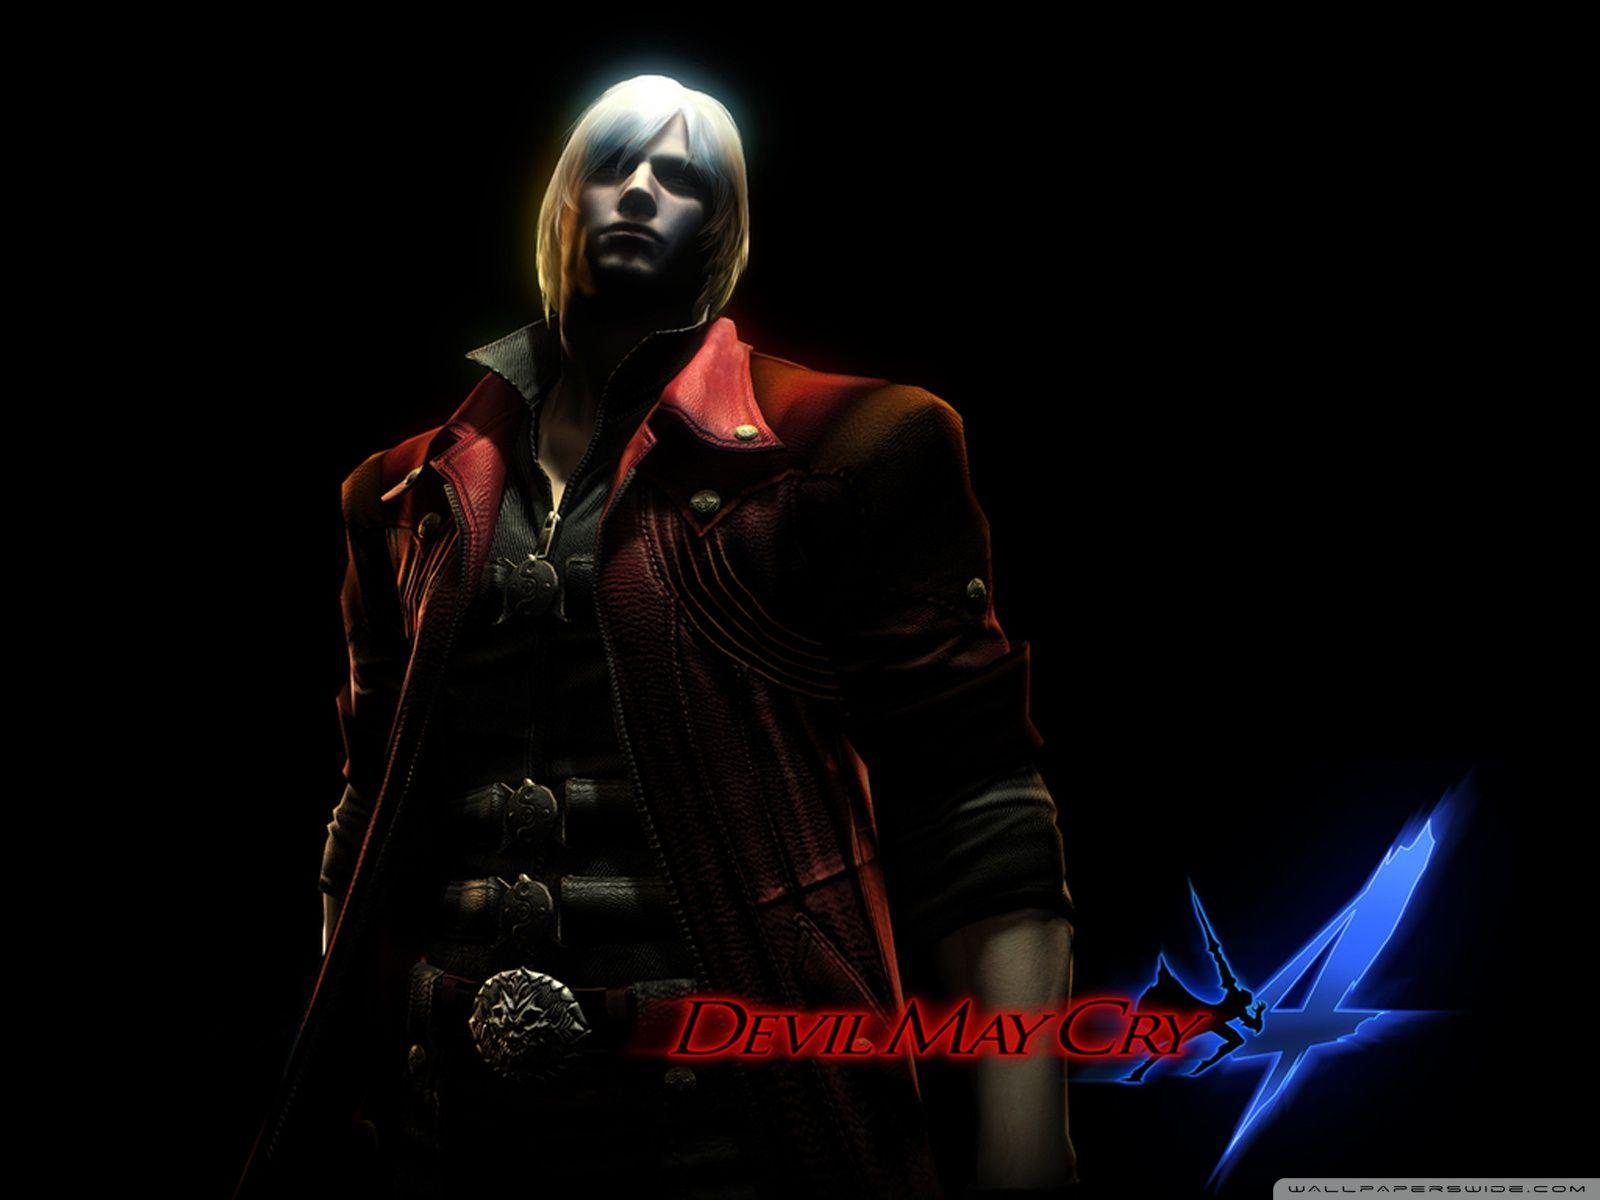 Devil May Cry 4 Dante Wallpapers Wallpaper Cave